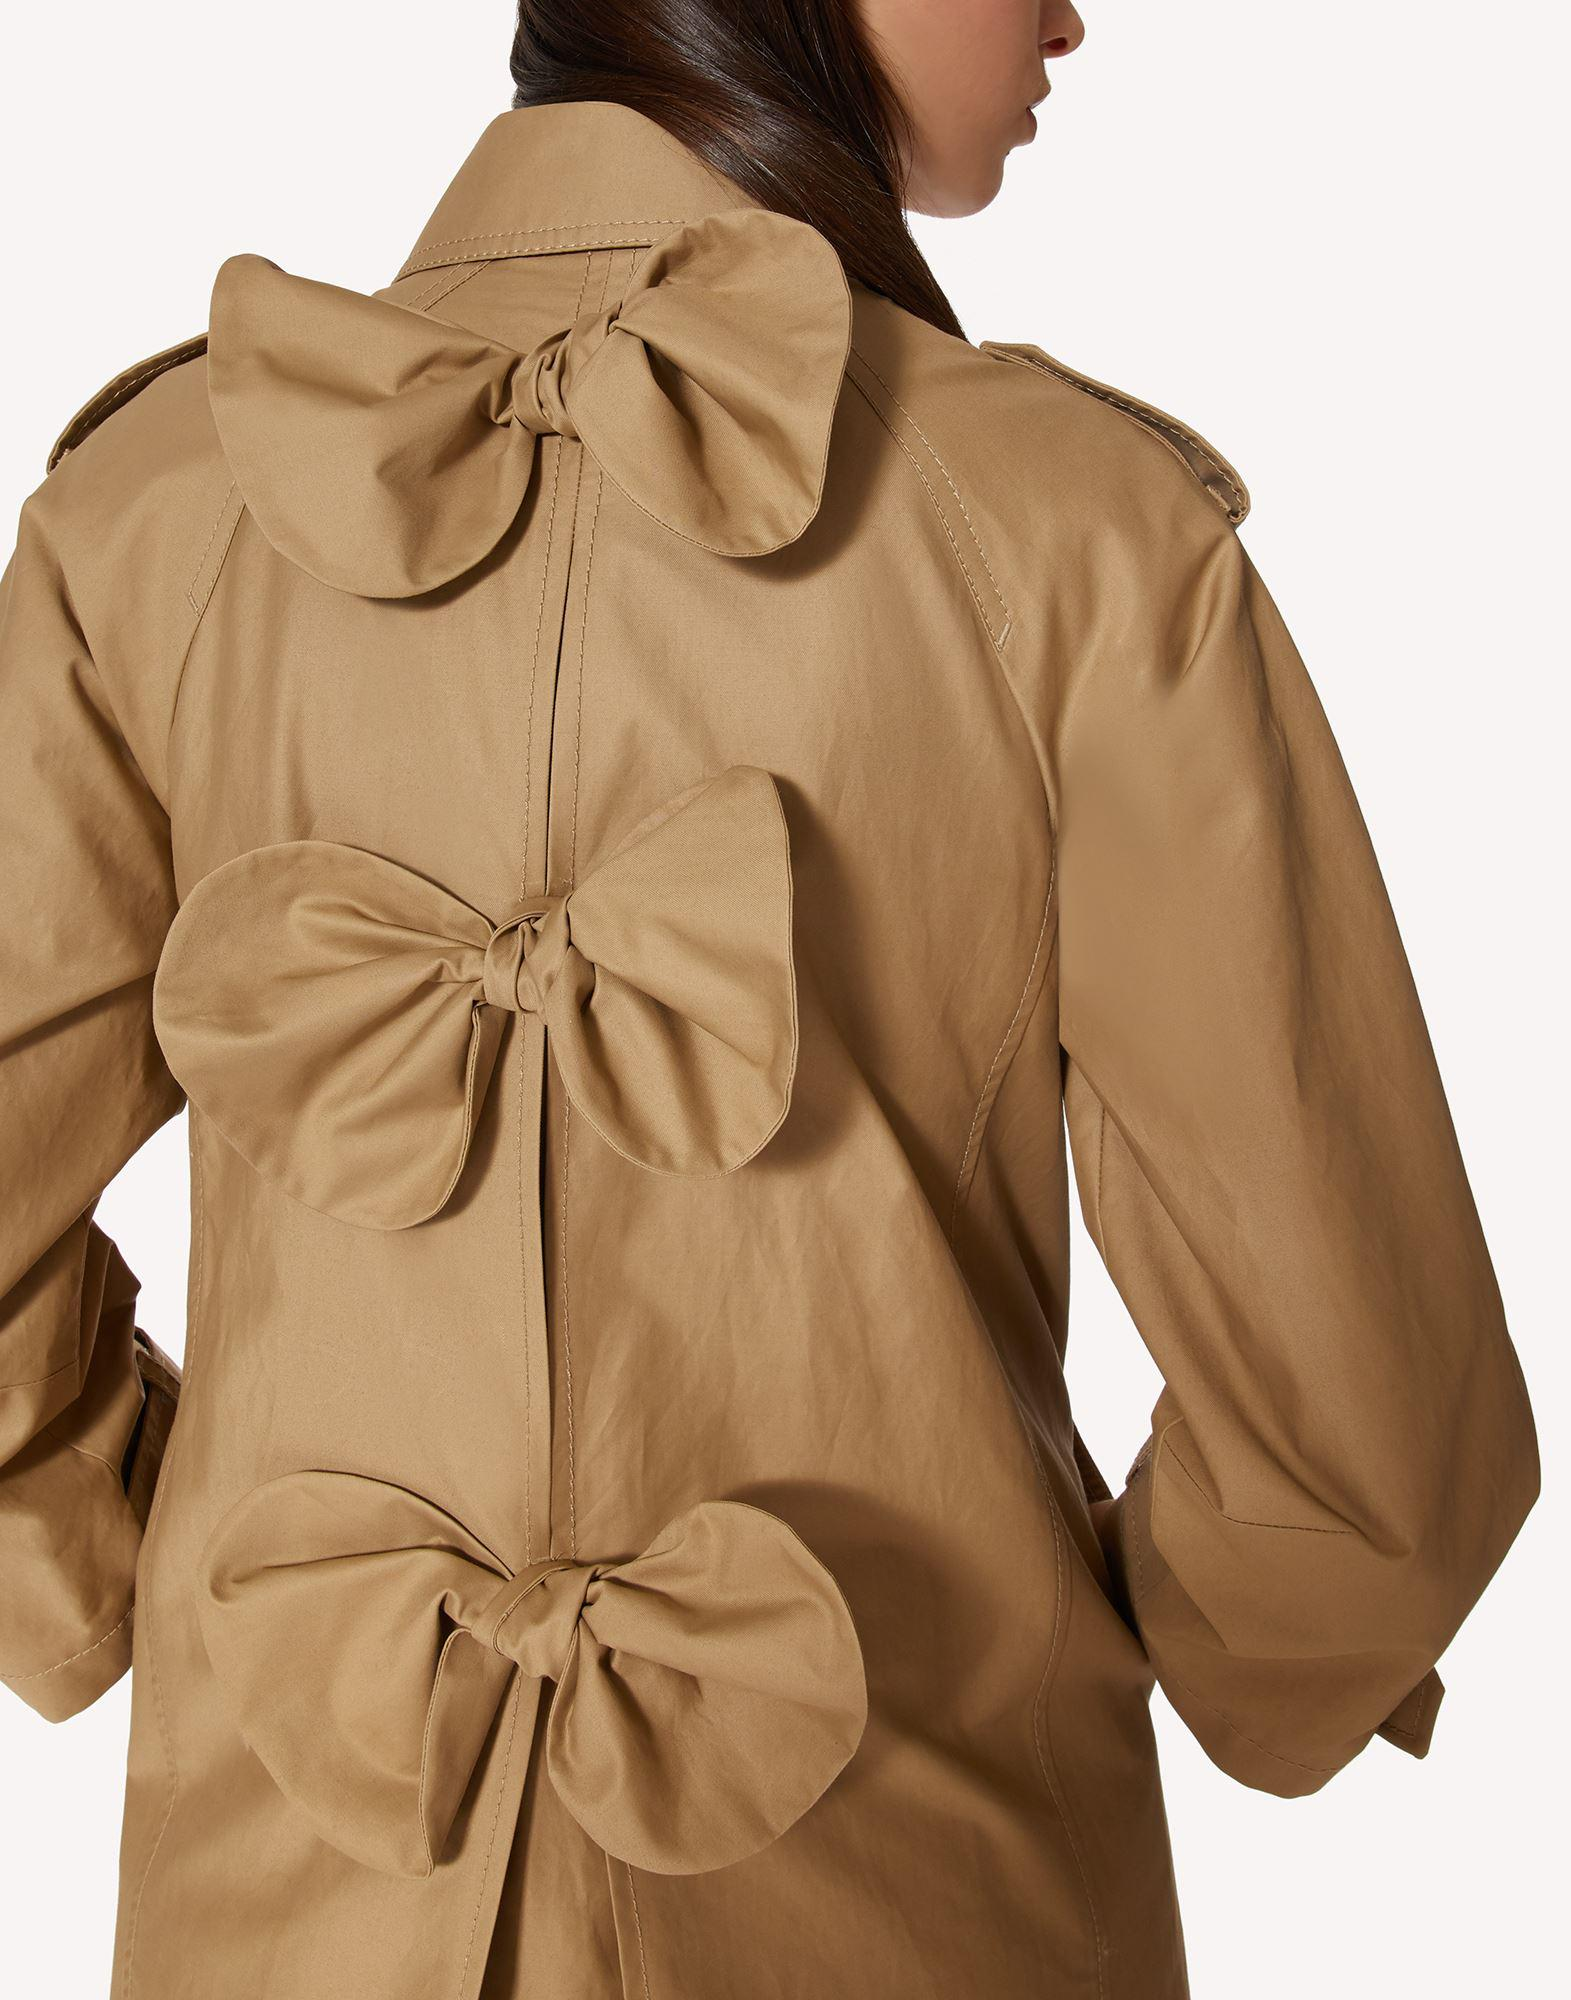 GABARDINE TRENCH COAT WITH BOW DETAILS 4